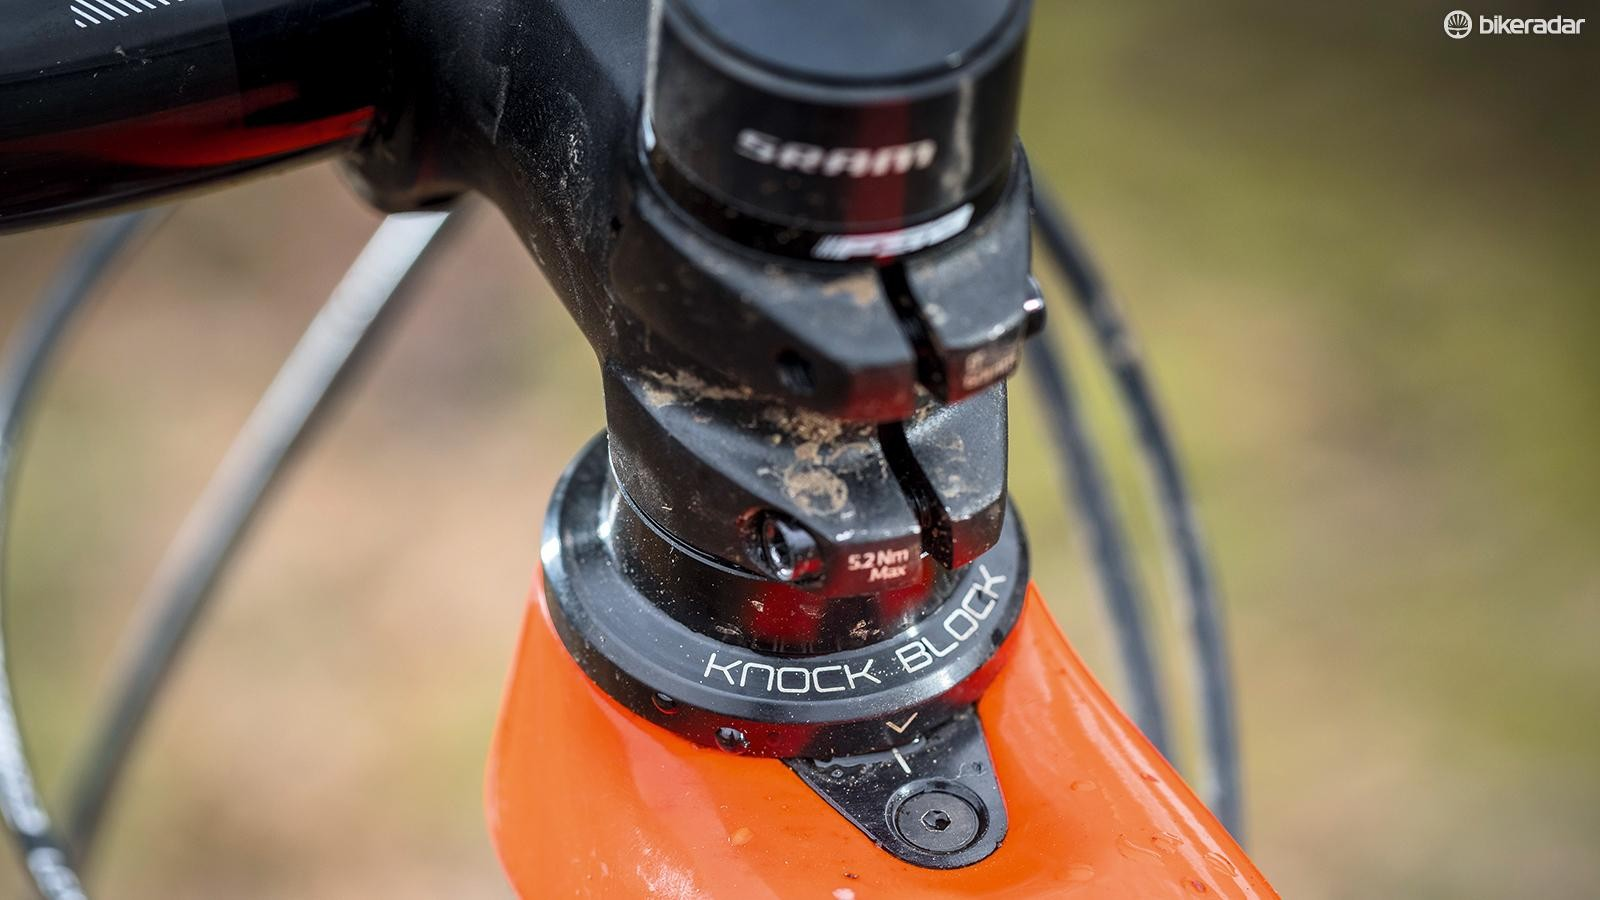 The 55mm Bontrager stem